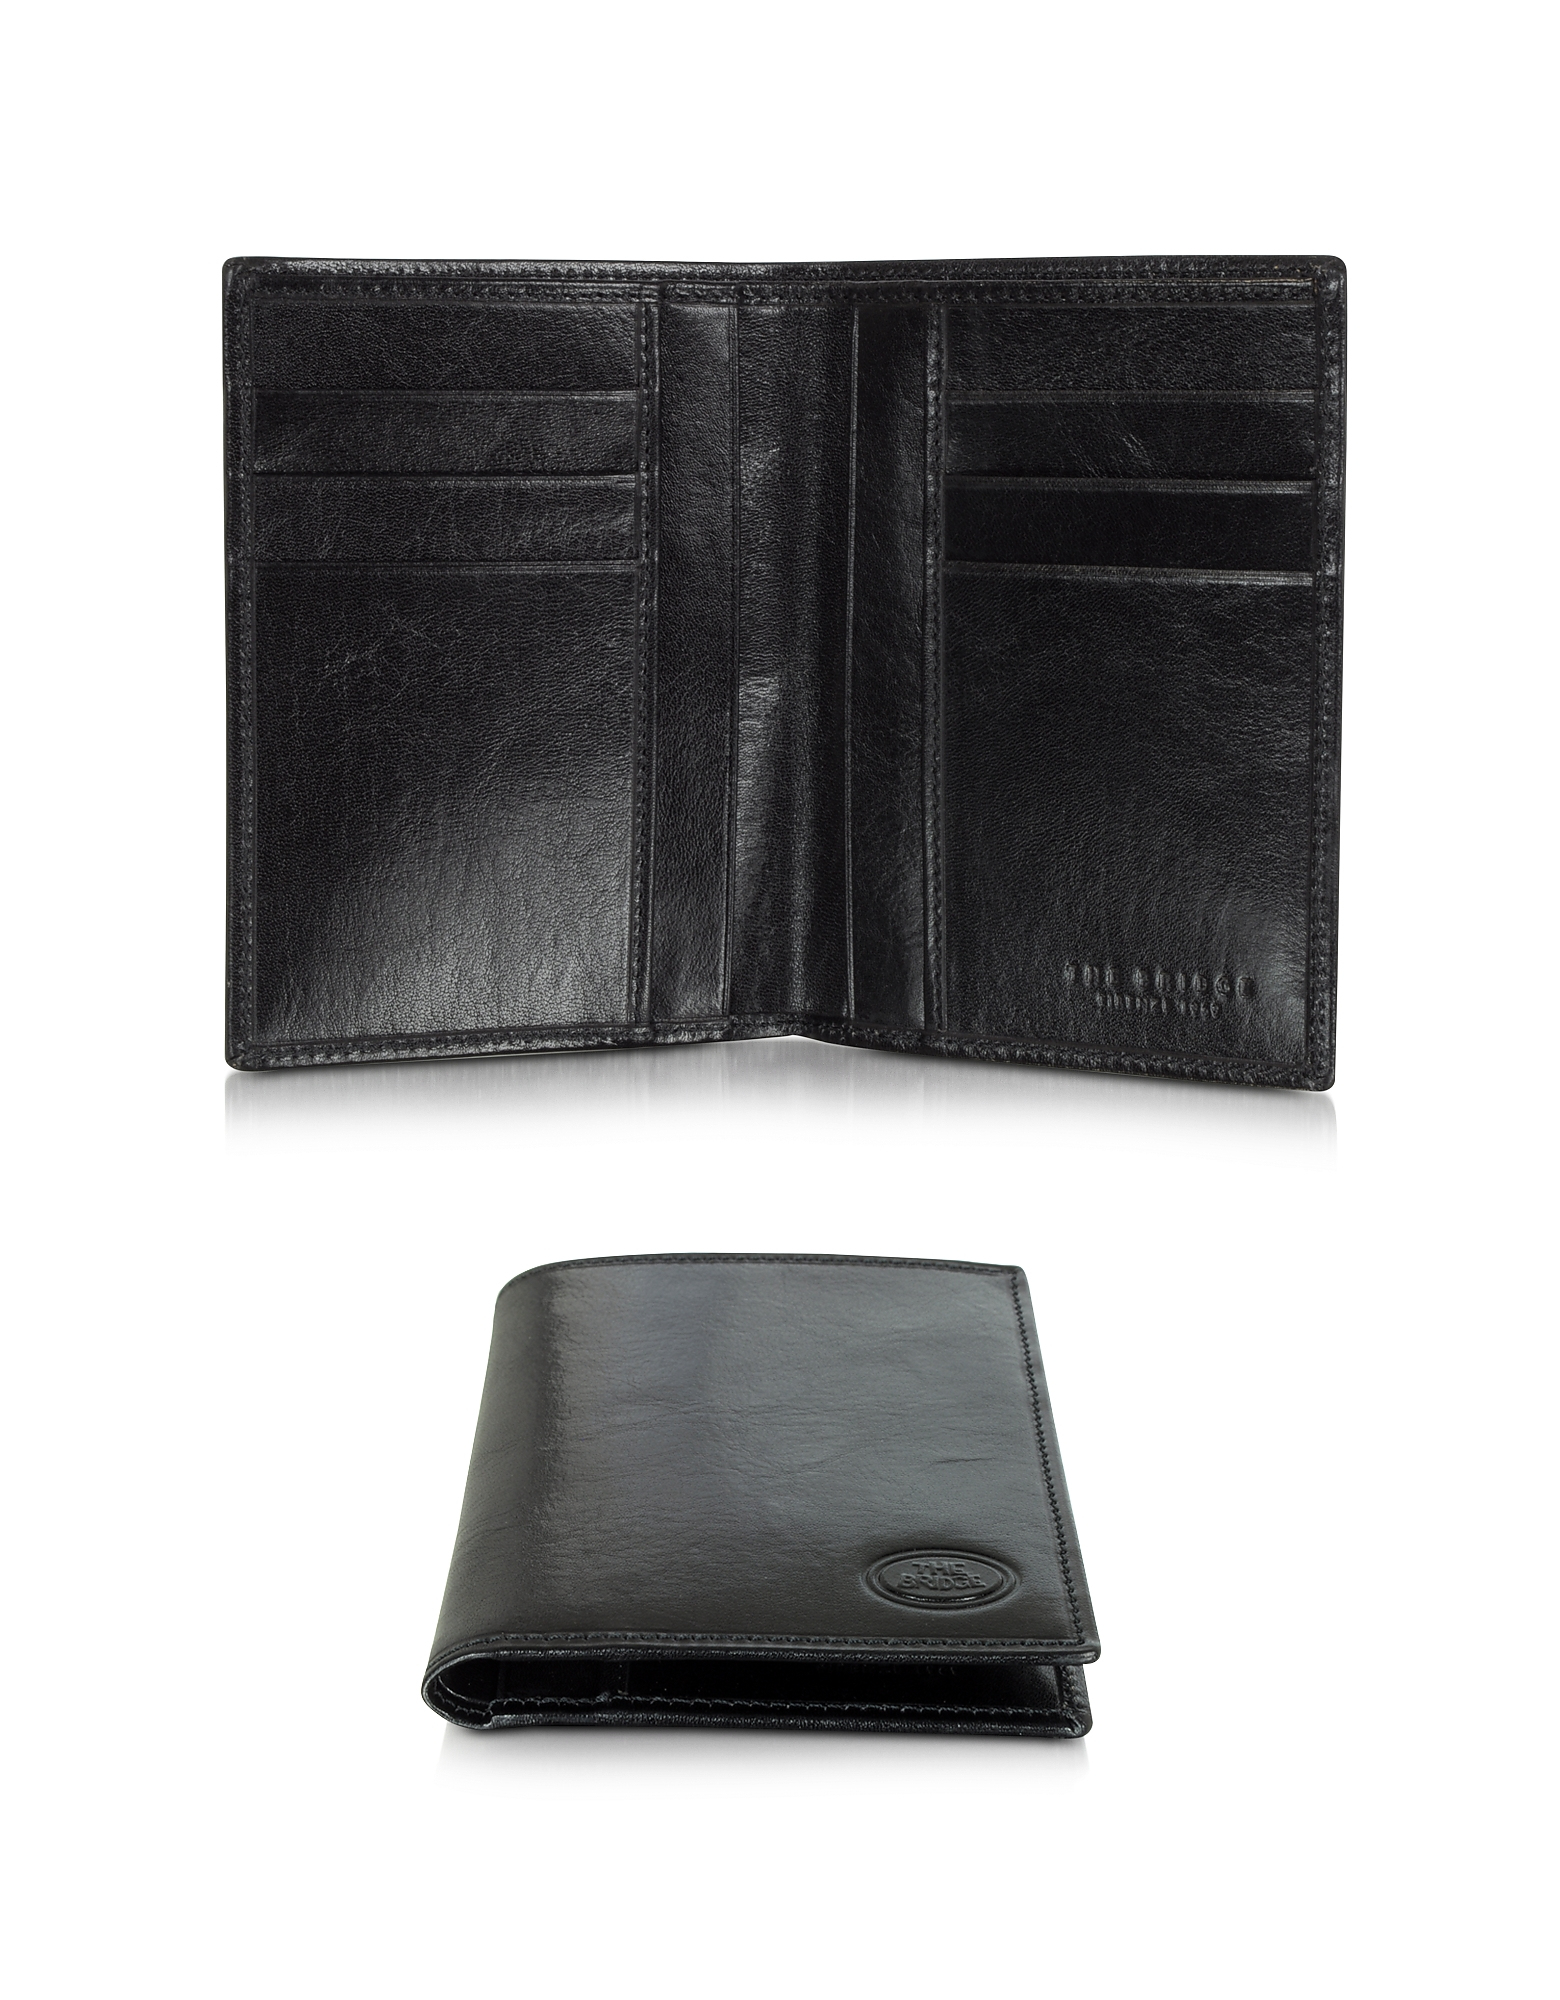 The Bridge Wallets, Story Uomo Dark Brown Leather Men's Vertical Wallet